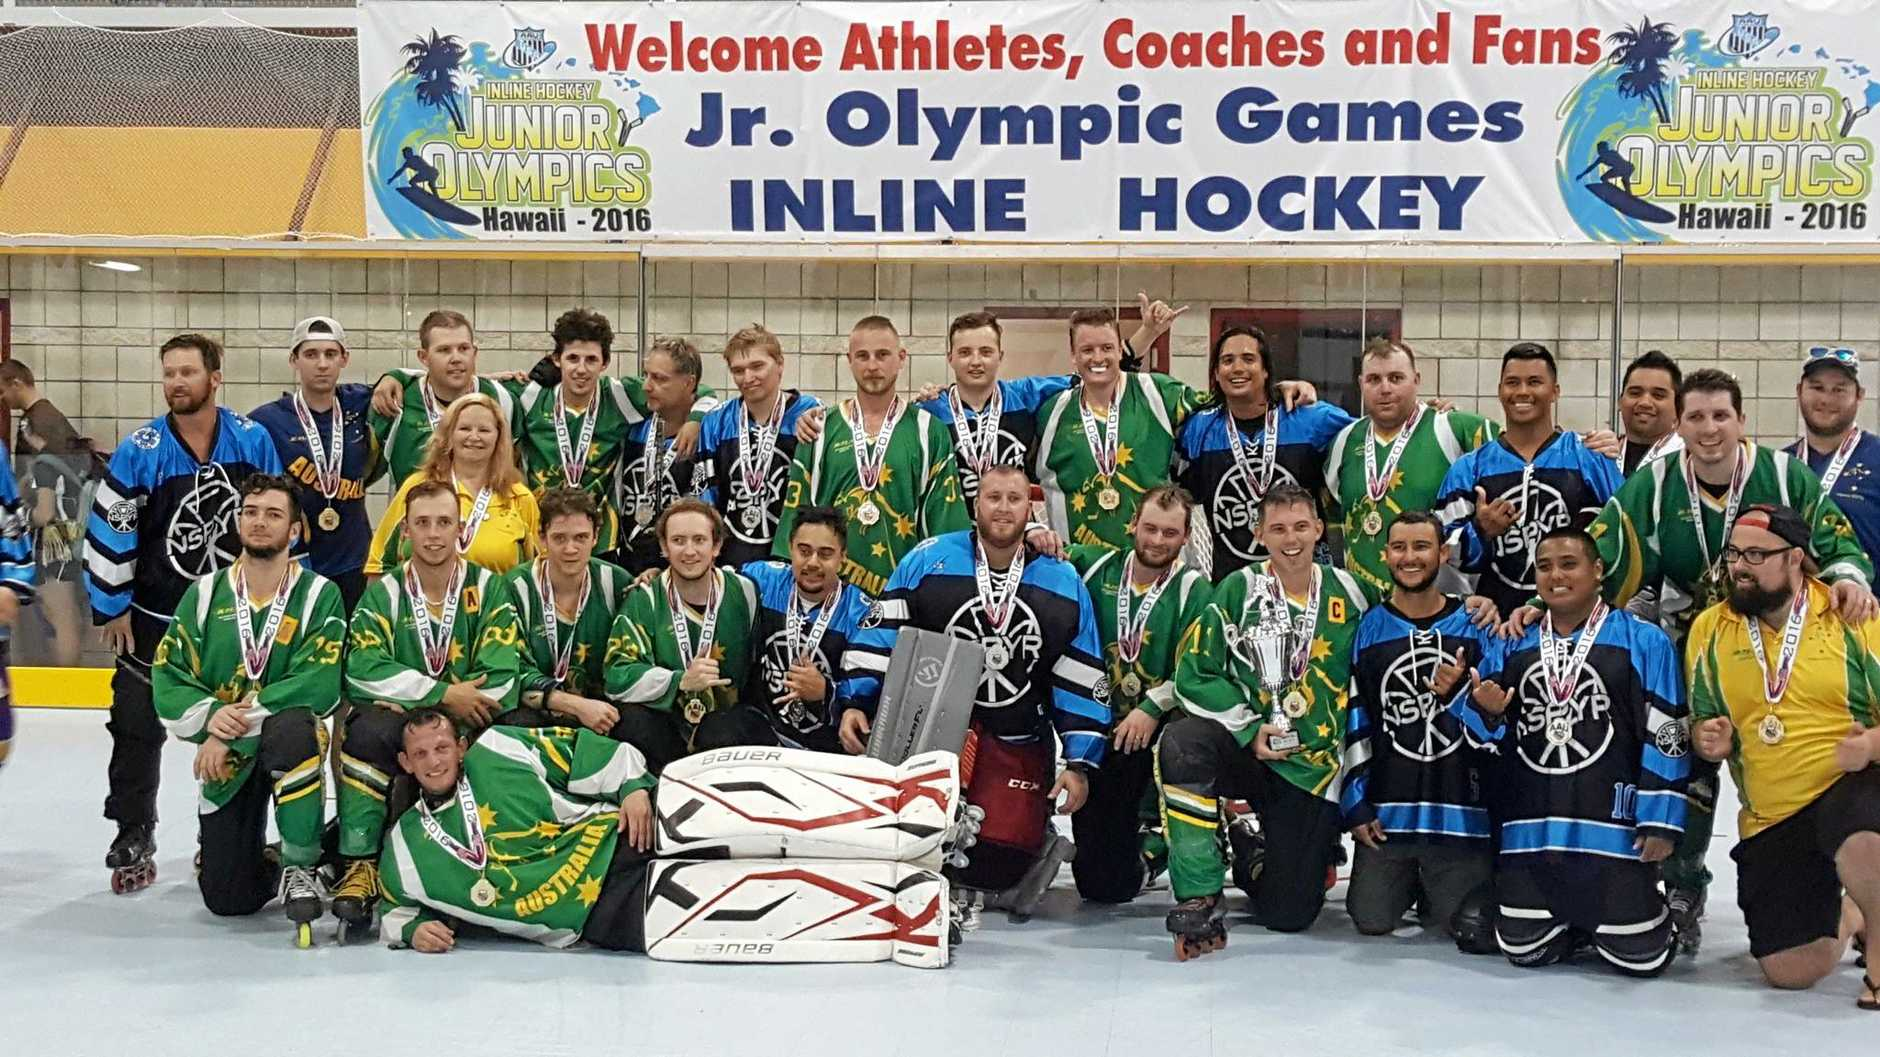 Mackay players in line for gold after winning in Hawaii